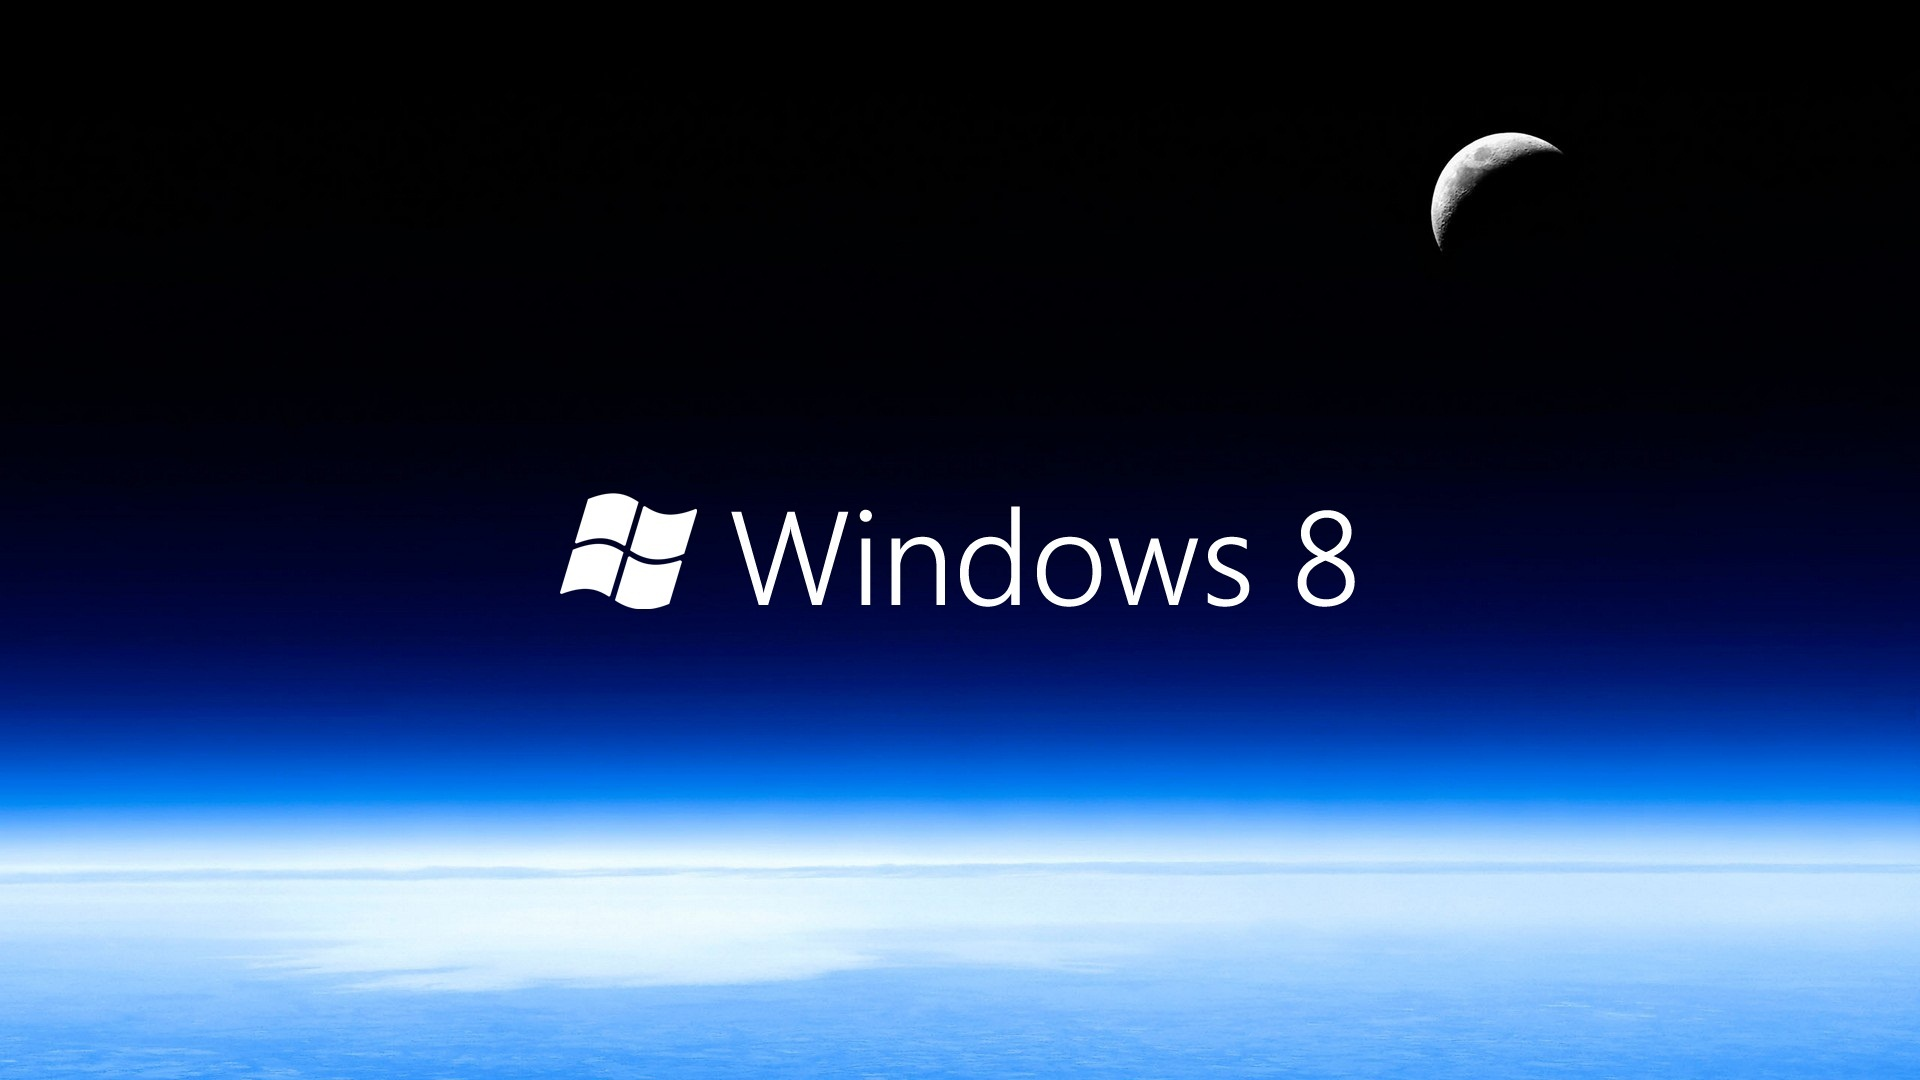 Windows 8 Full HD Papel De Parede And Background Image